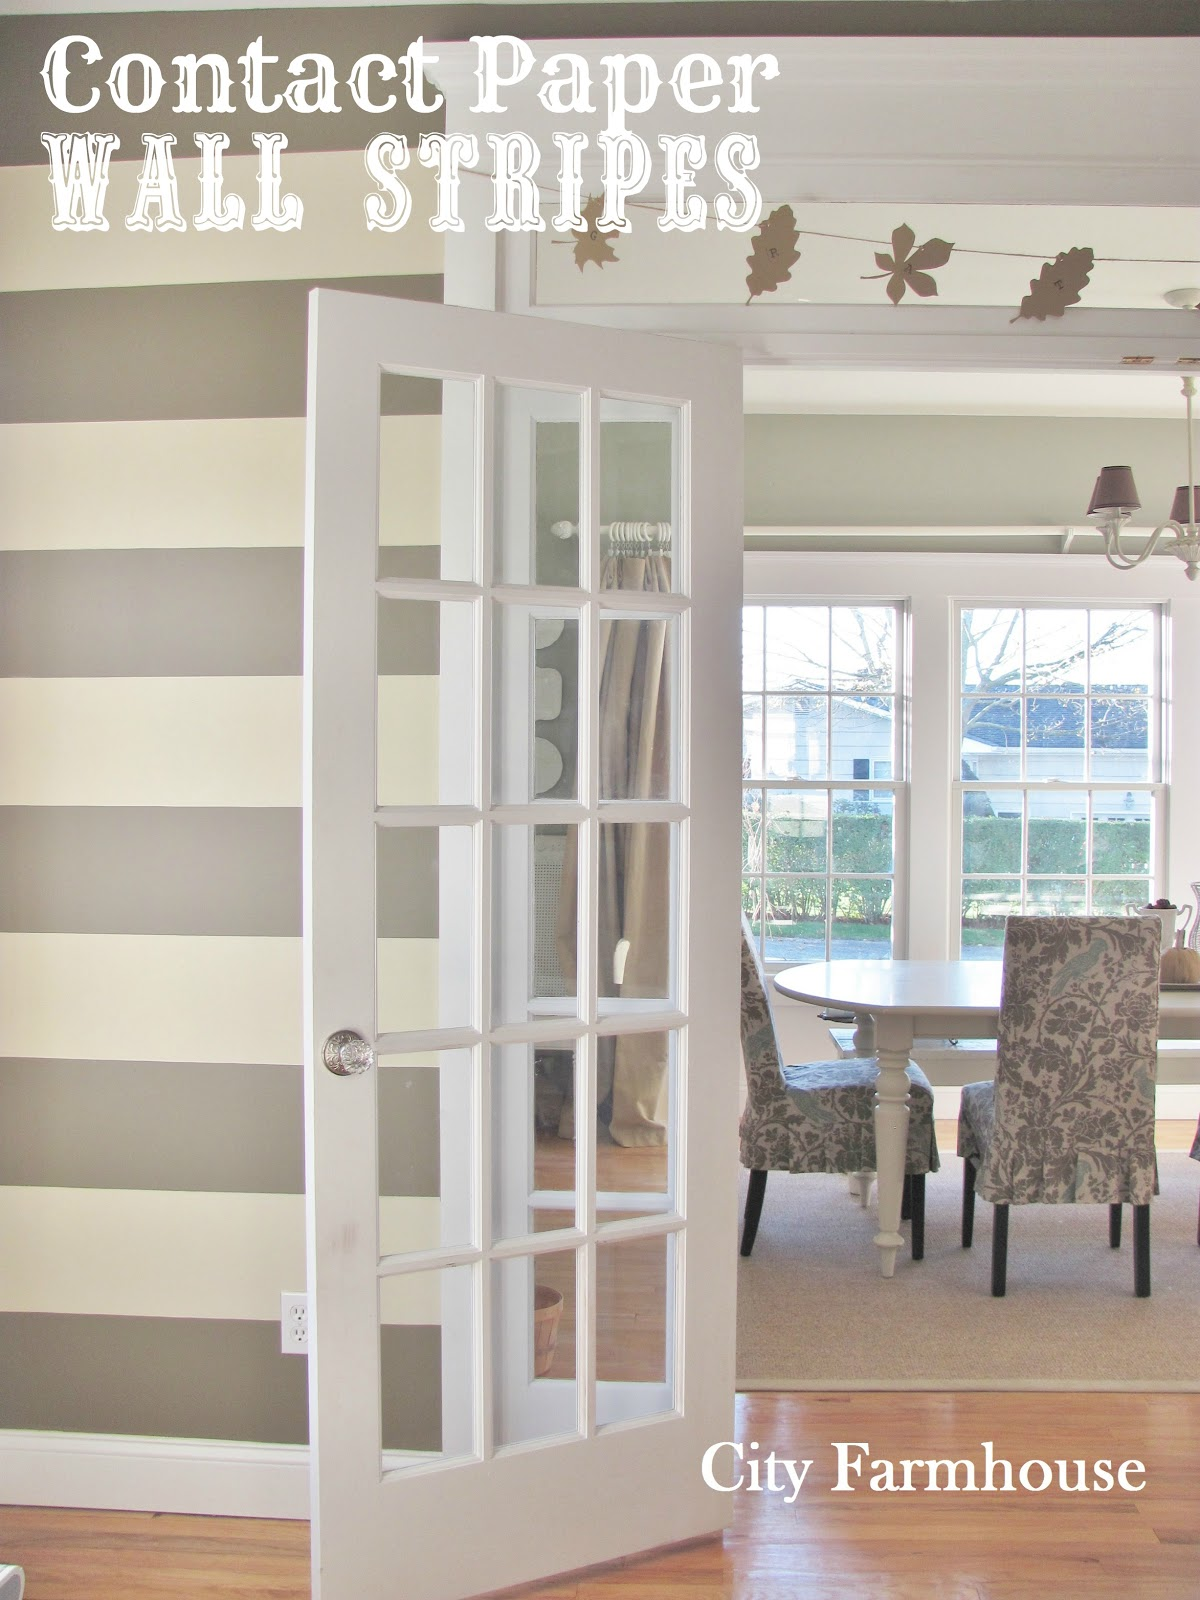 Contact Paper For Walls contact paper wall stripes - city farmhouse